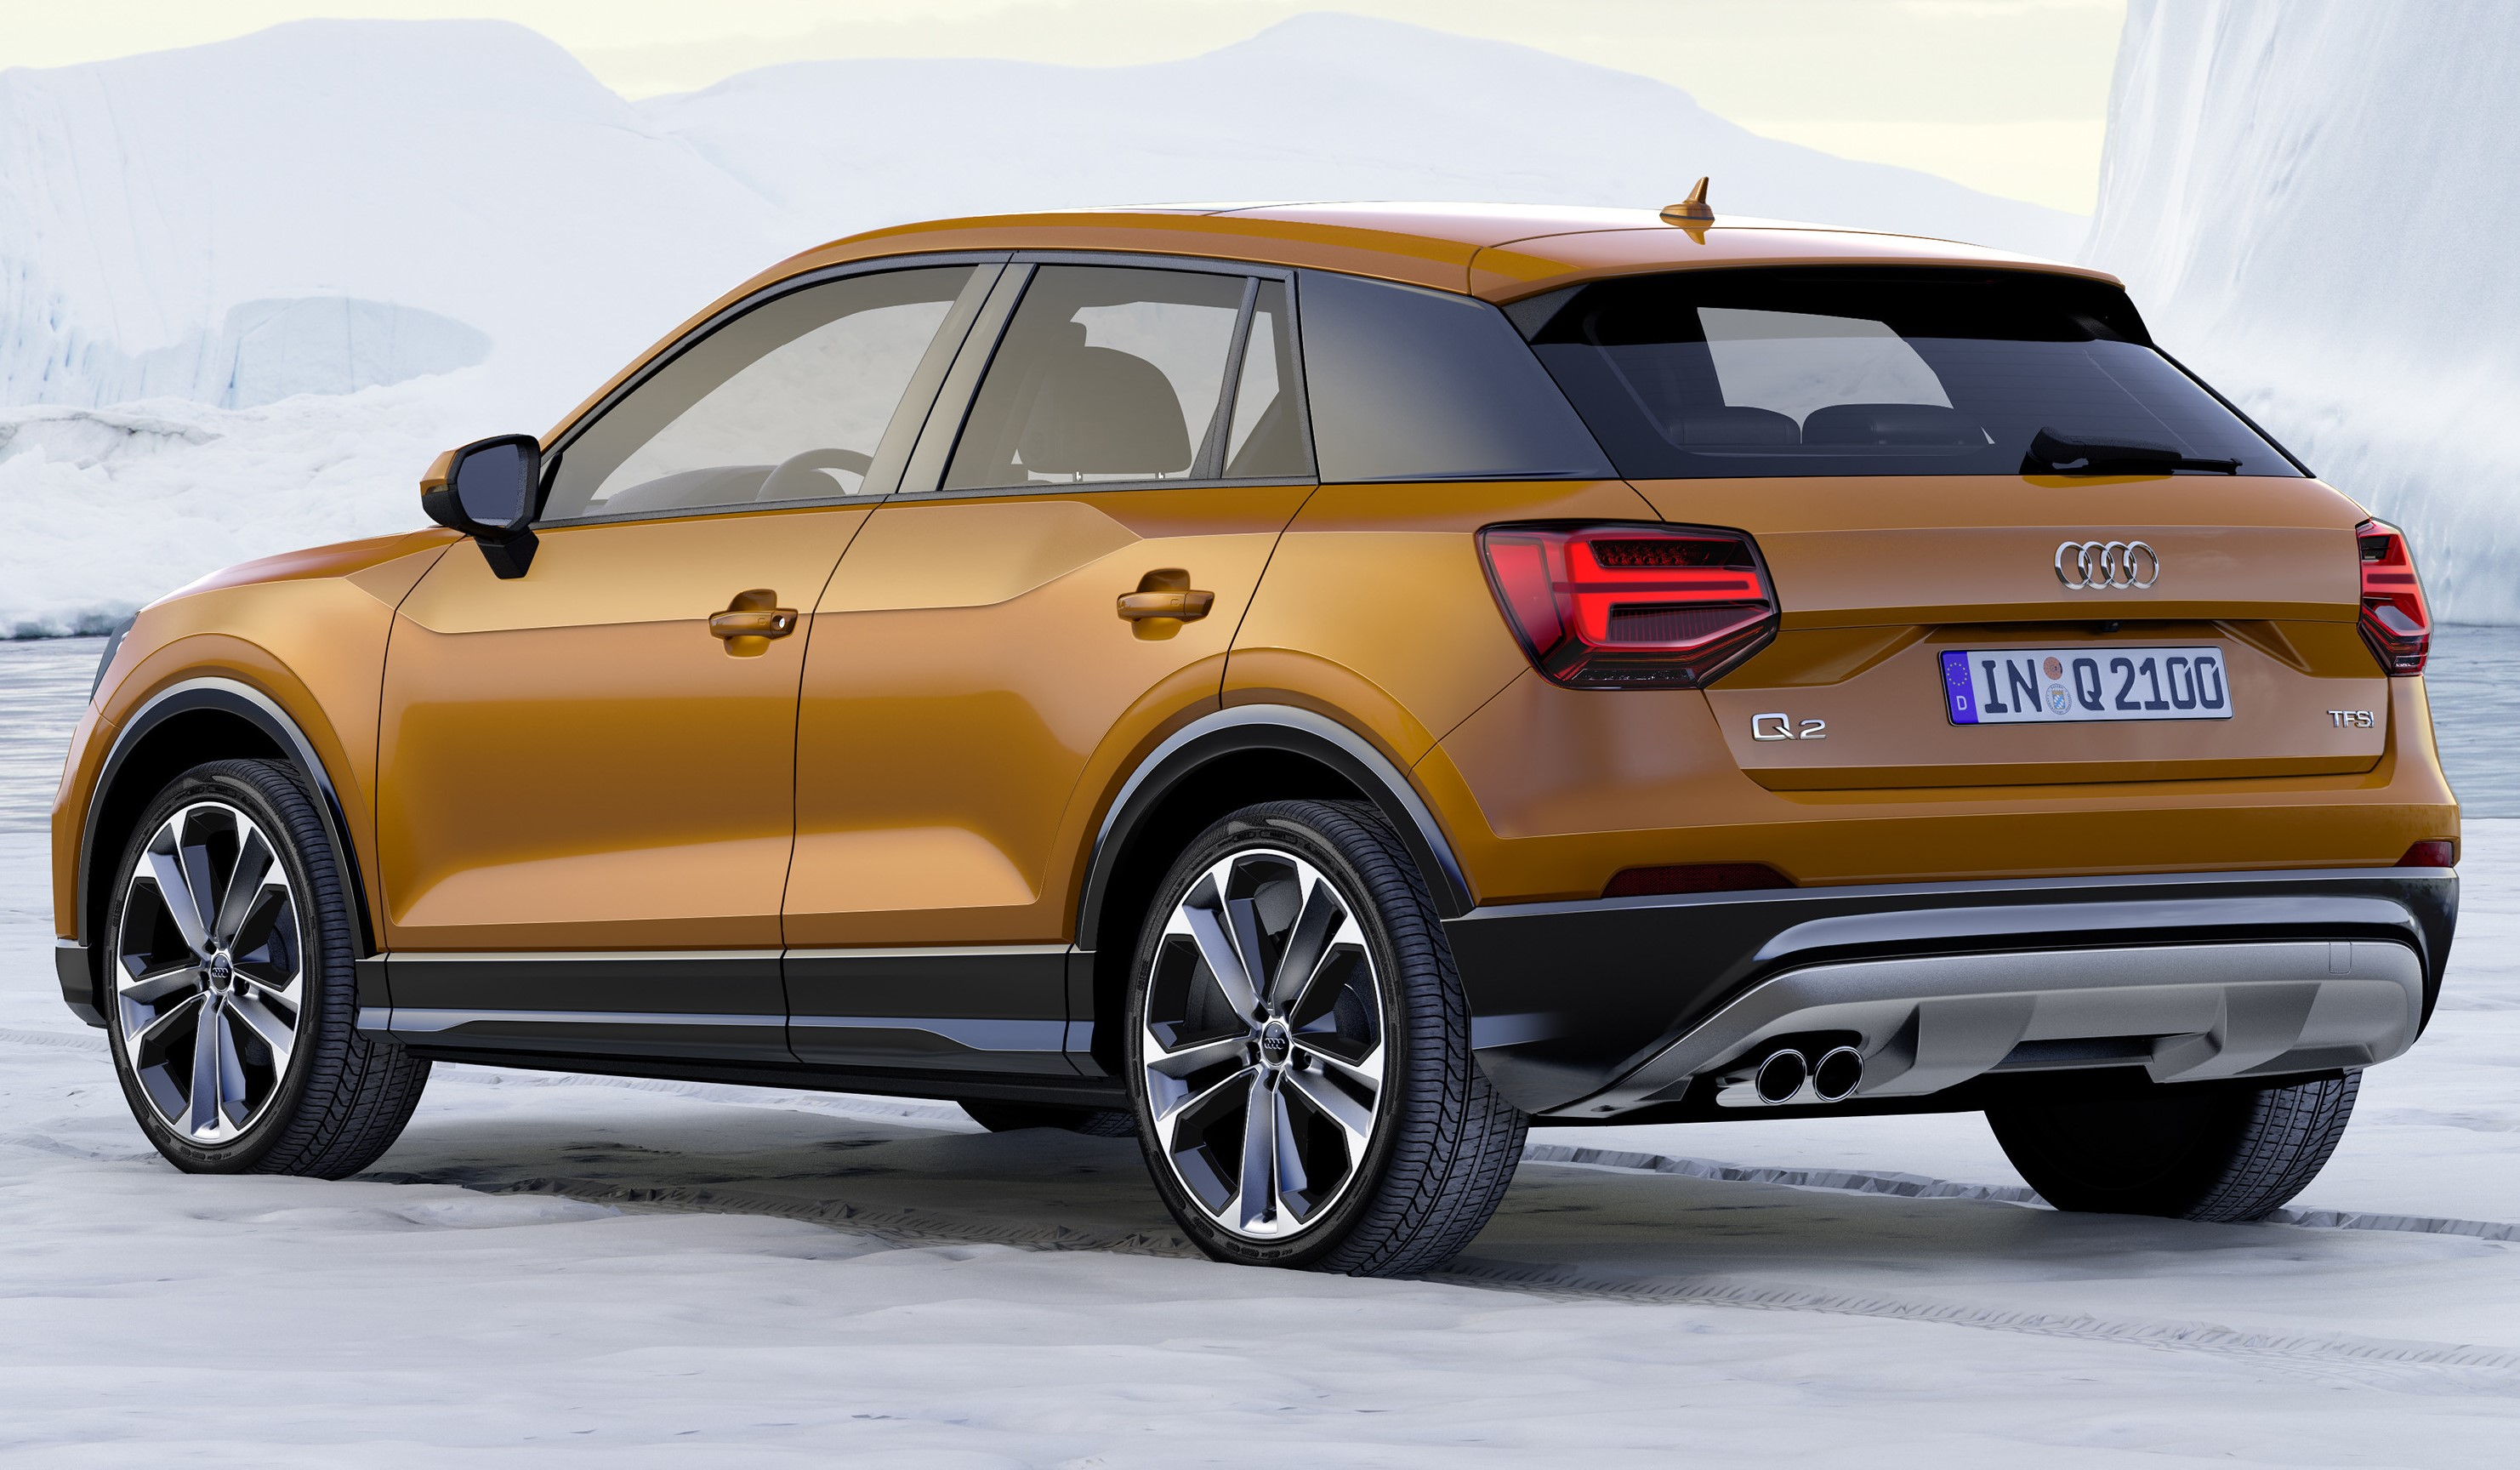 File:Audi Q2.jpg - Wikimedia Commons